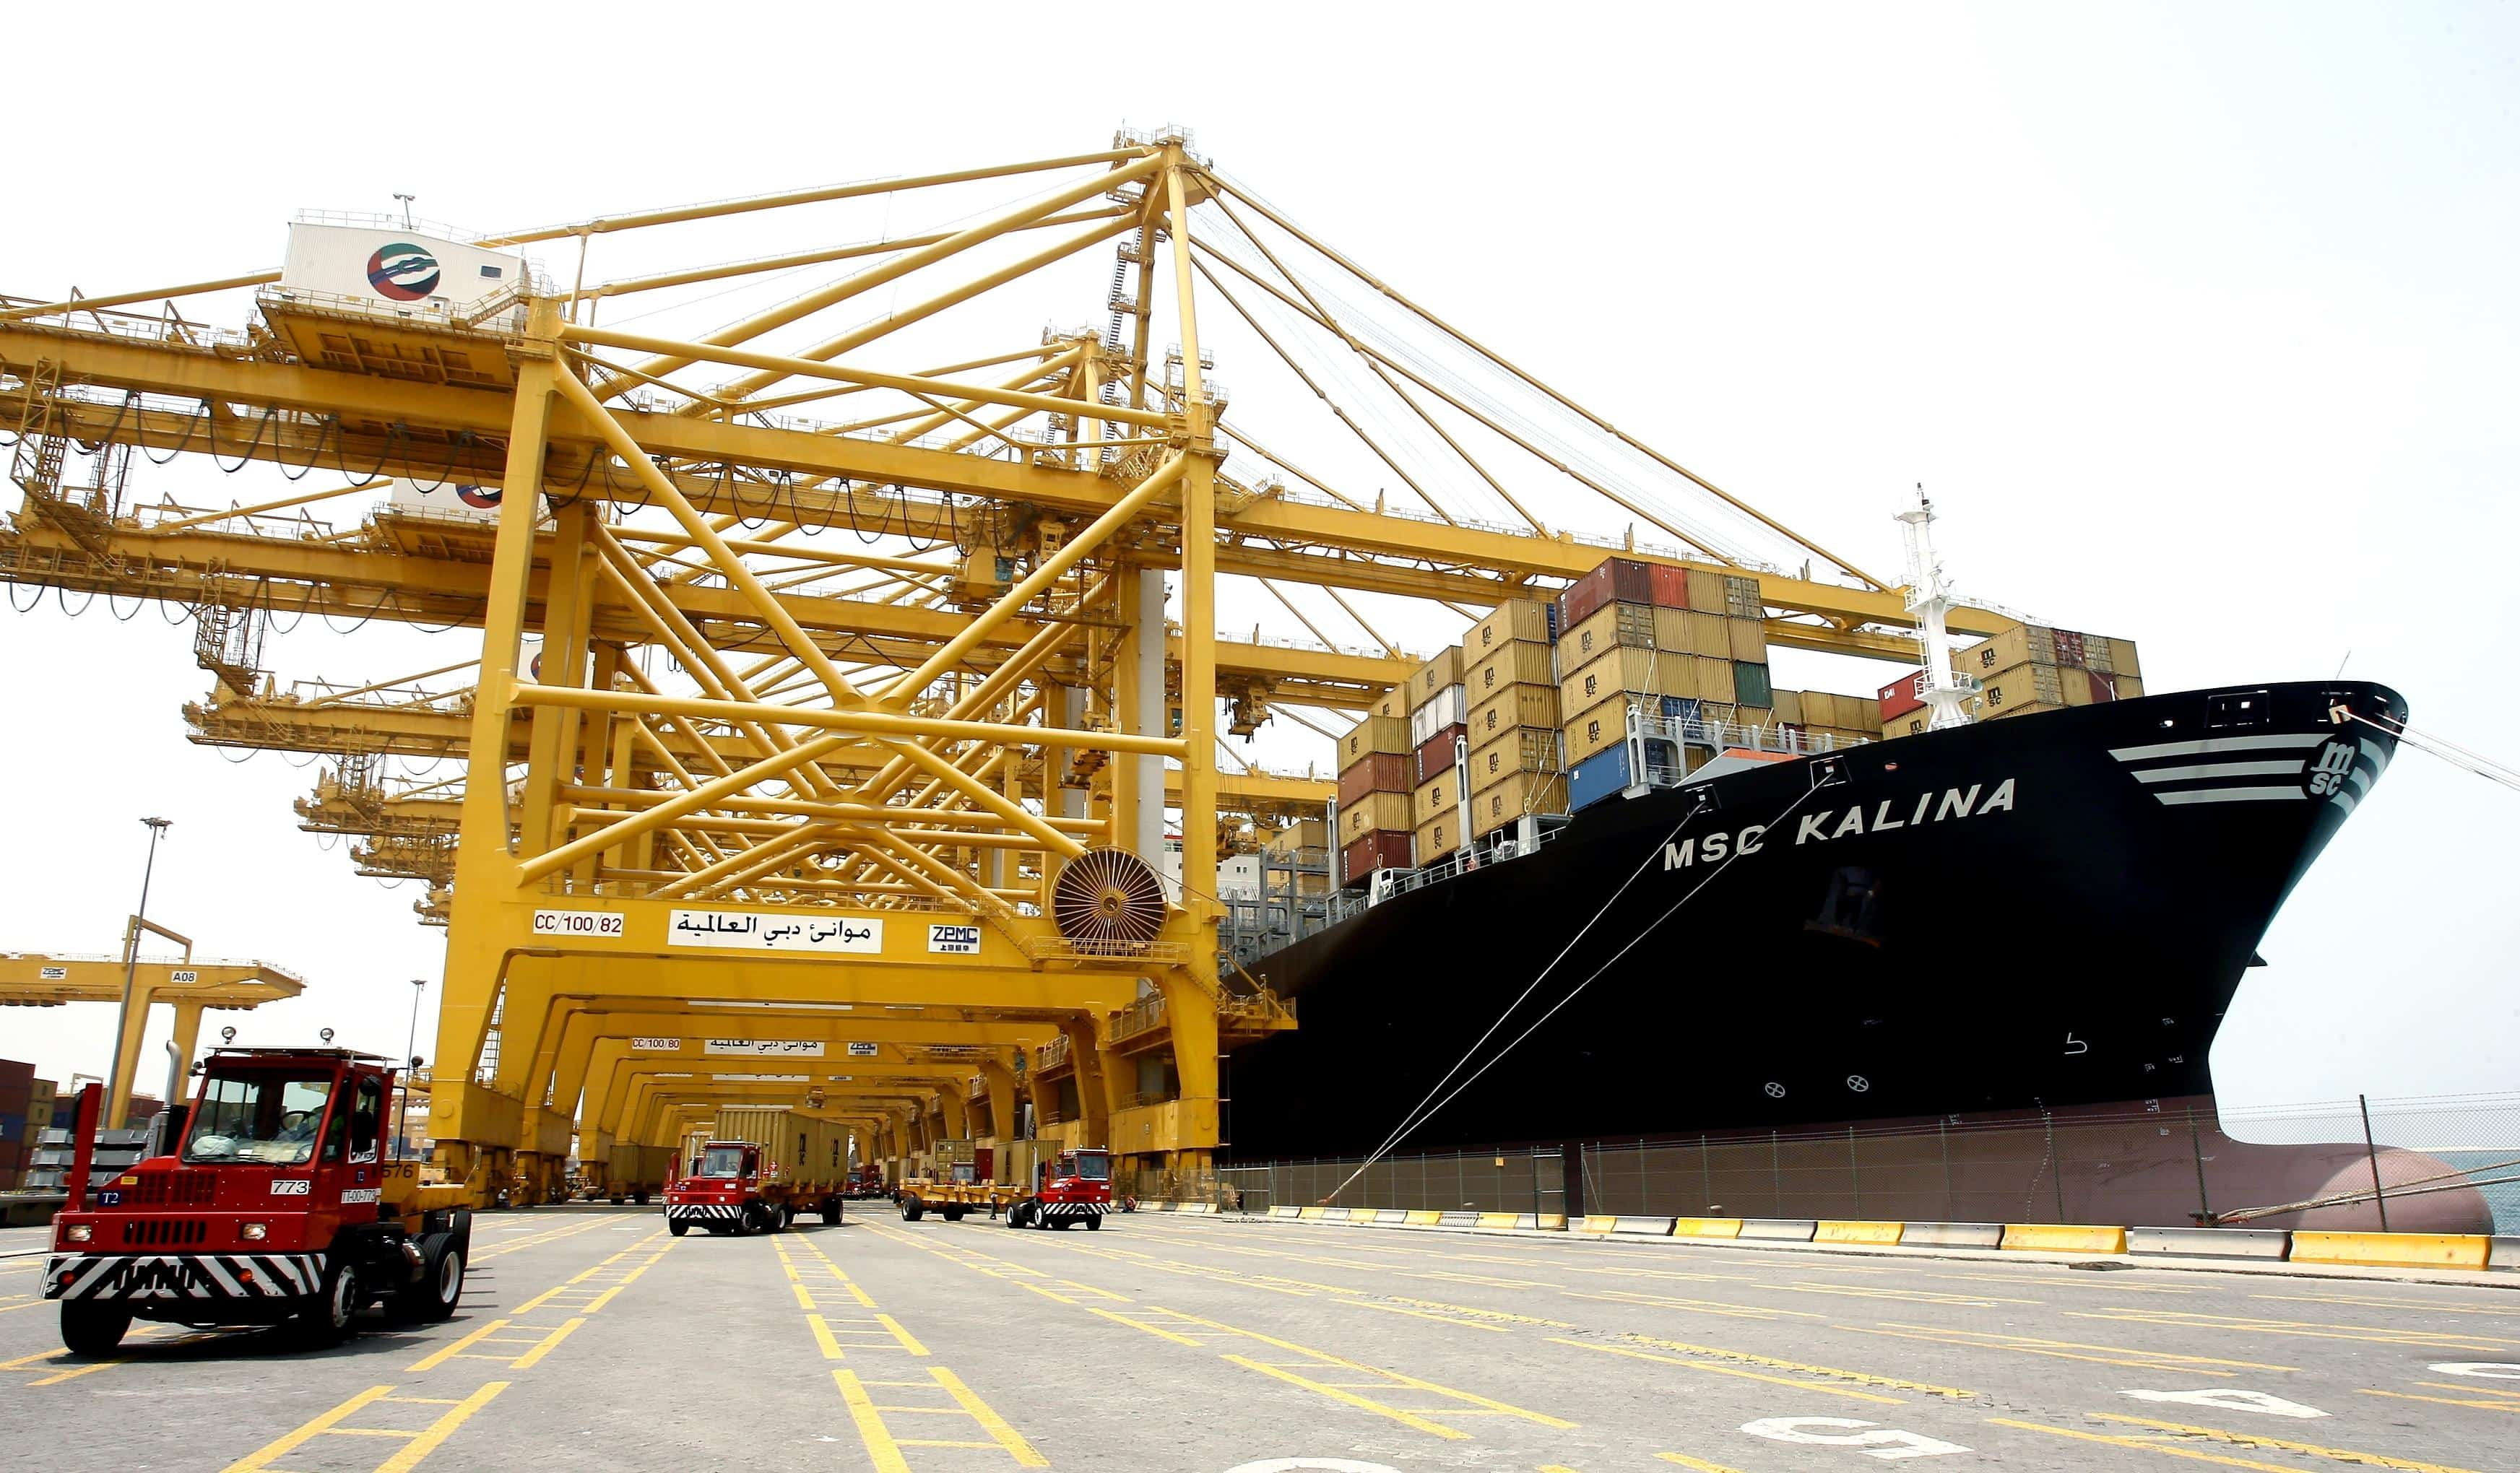 DP World increases profits after acquisition of logistics firm